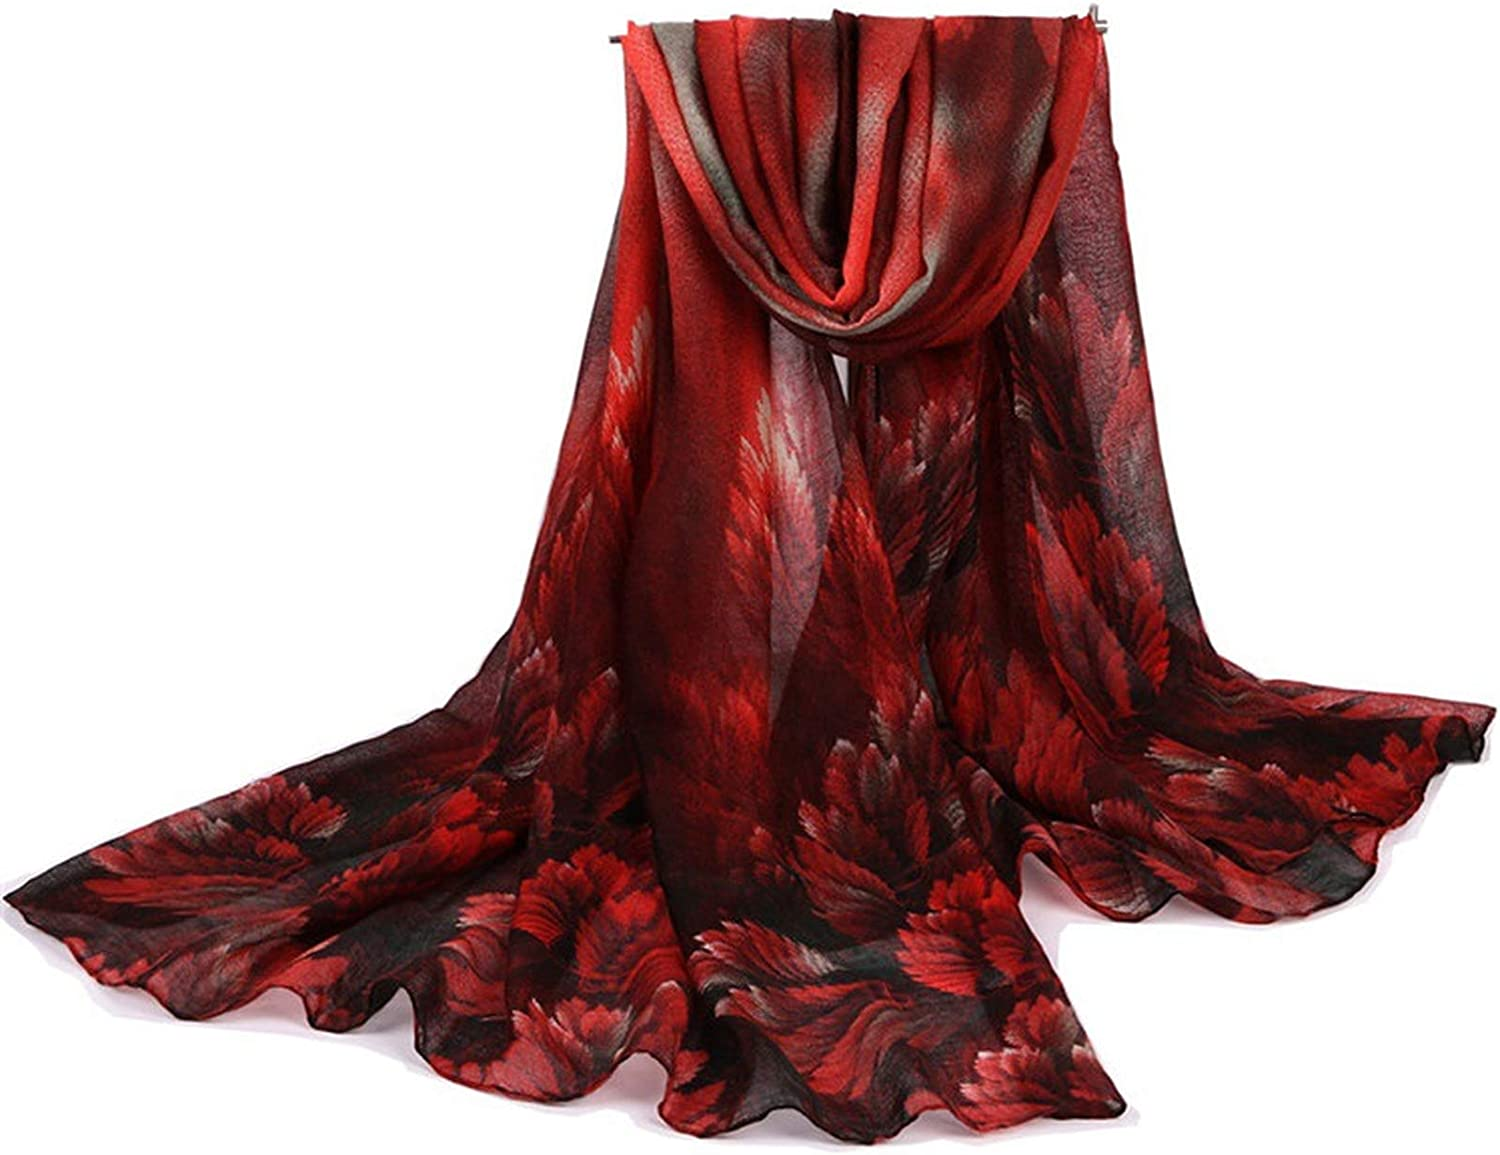 New Winter Coral flower Scarves Women Warm Bali Yarn Cotton Shawl And Wraps Lady Fashion Long Scarf Comfortable FD03